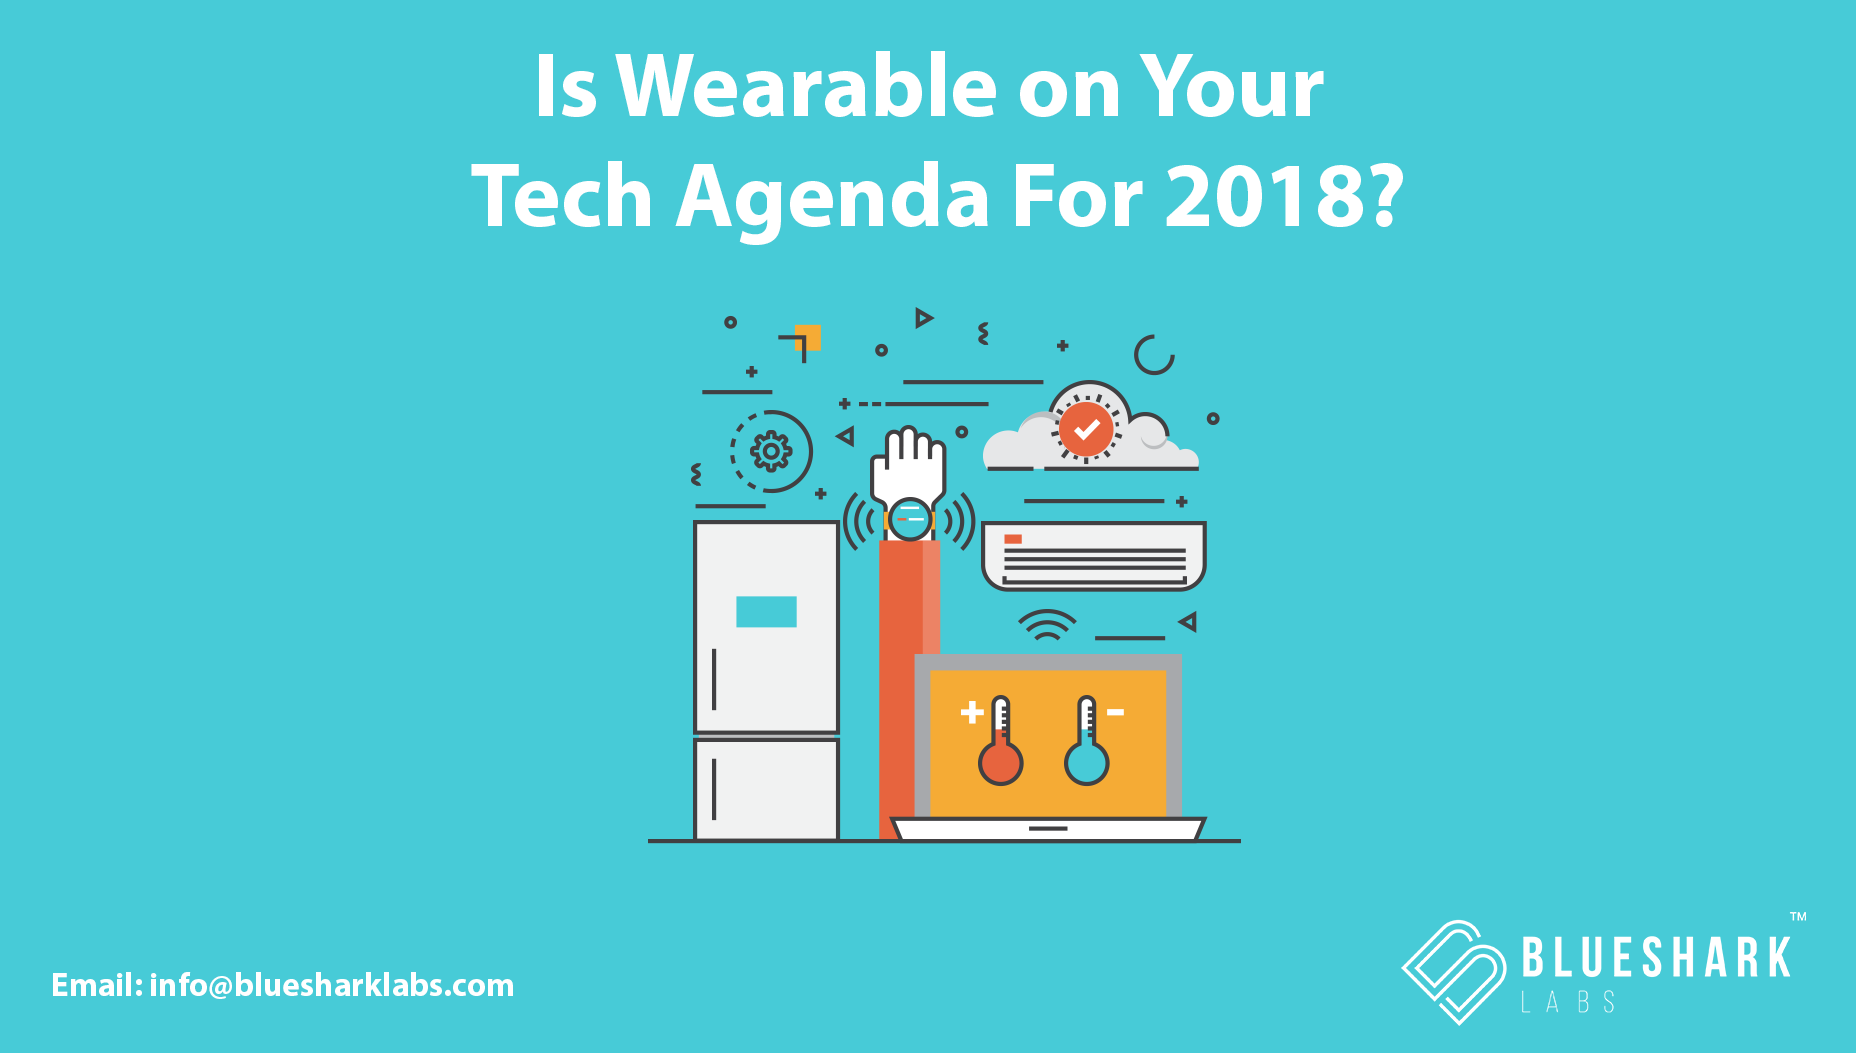 Is Wearable on Your Tech Agenda For 2018?